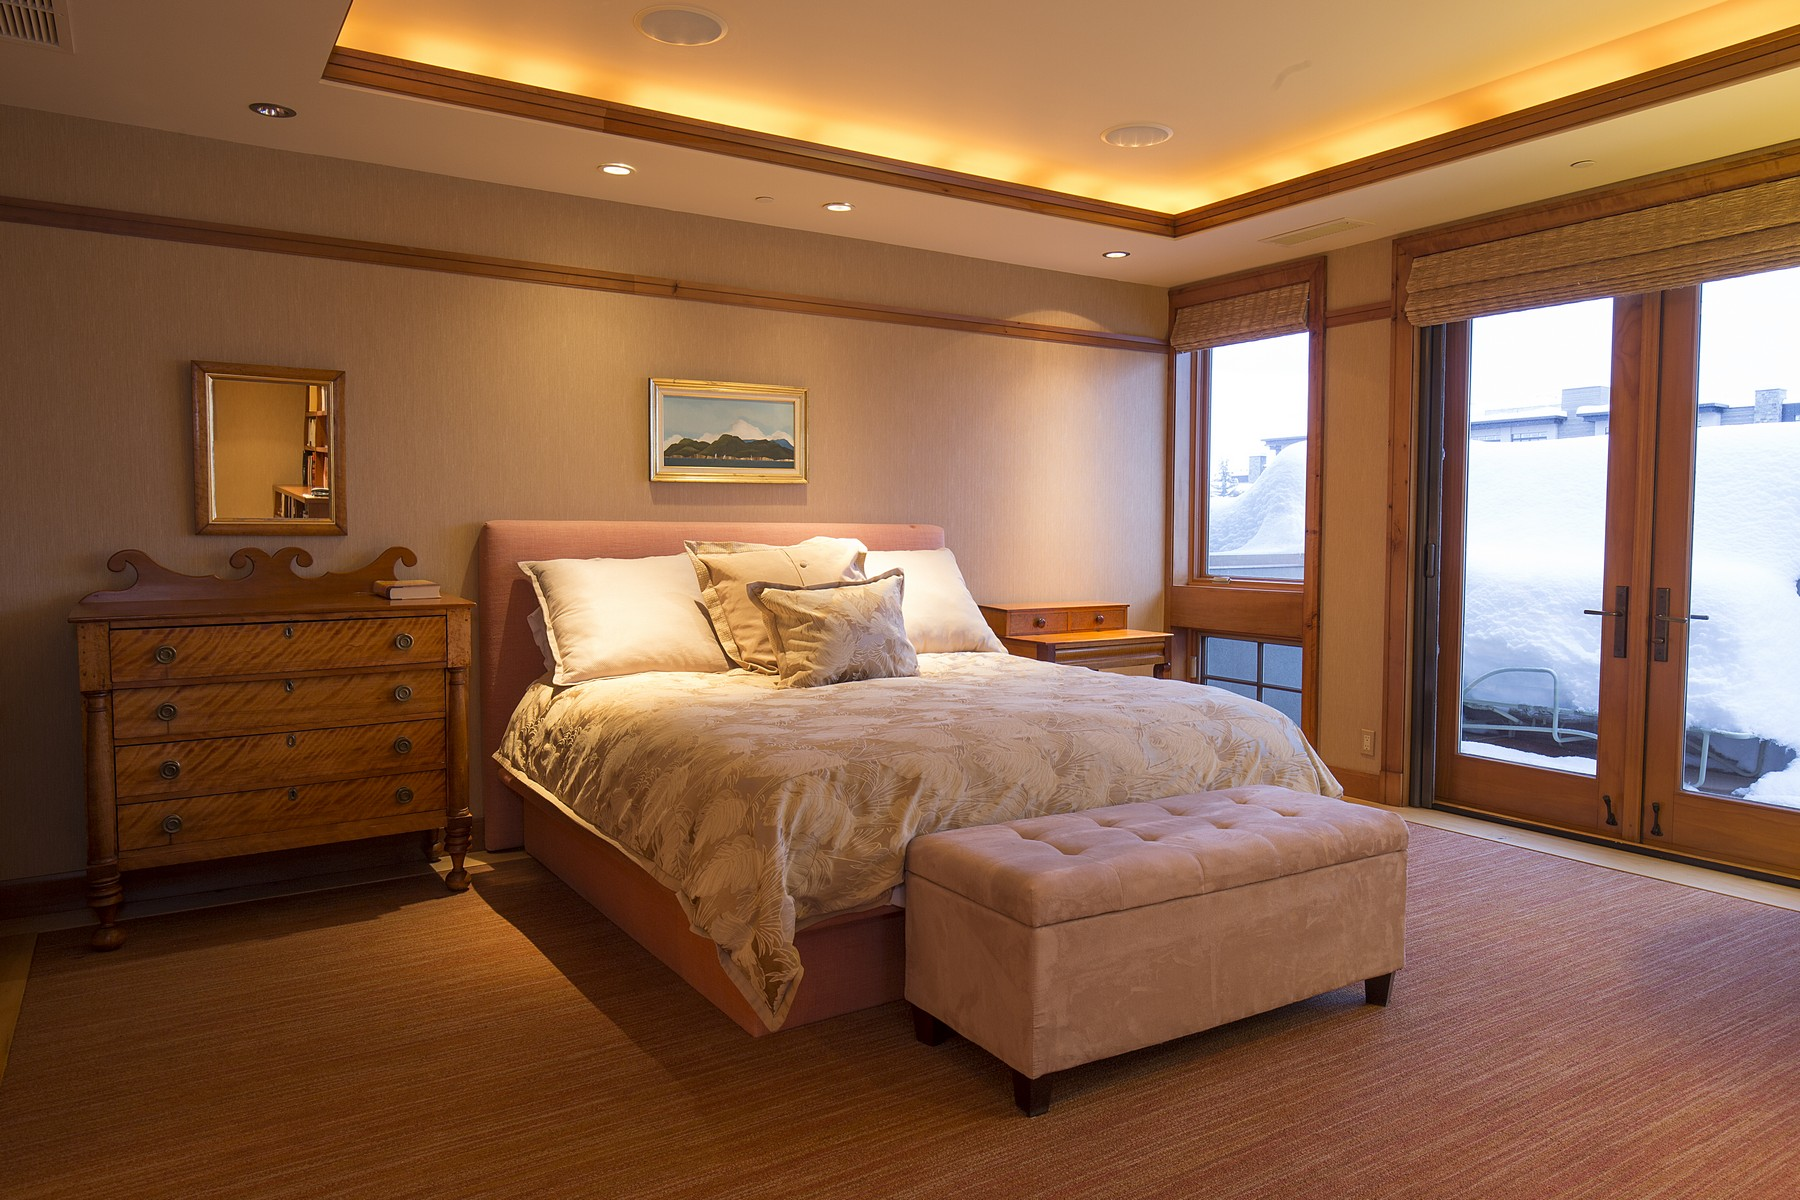 Additional photo for property listing at Baldy View Penthouse 271 N Washington Ave Unit 3 凯彻姆, 爱达荷州 83340 美国